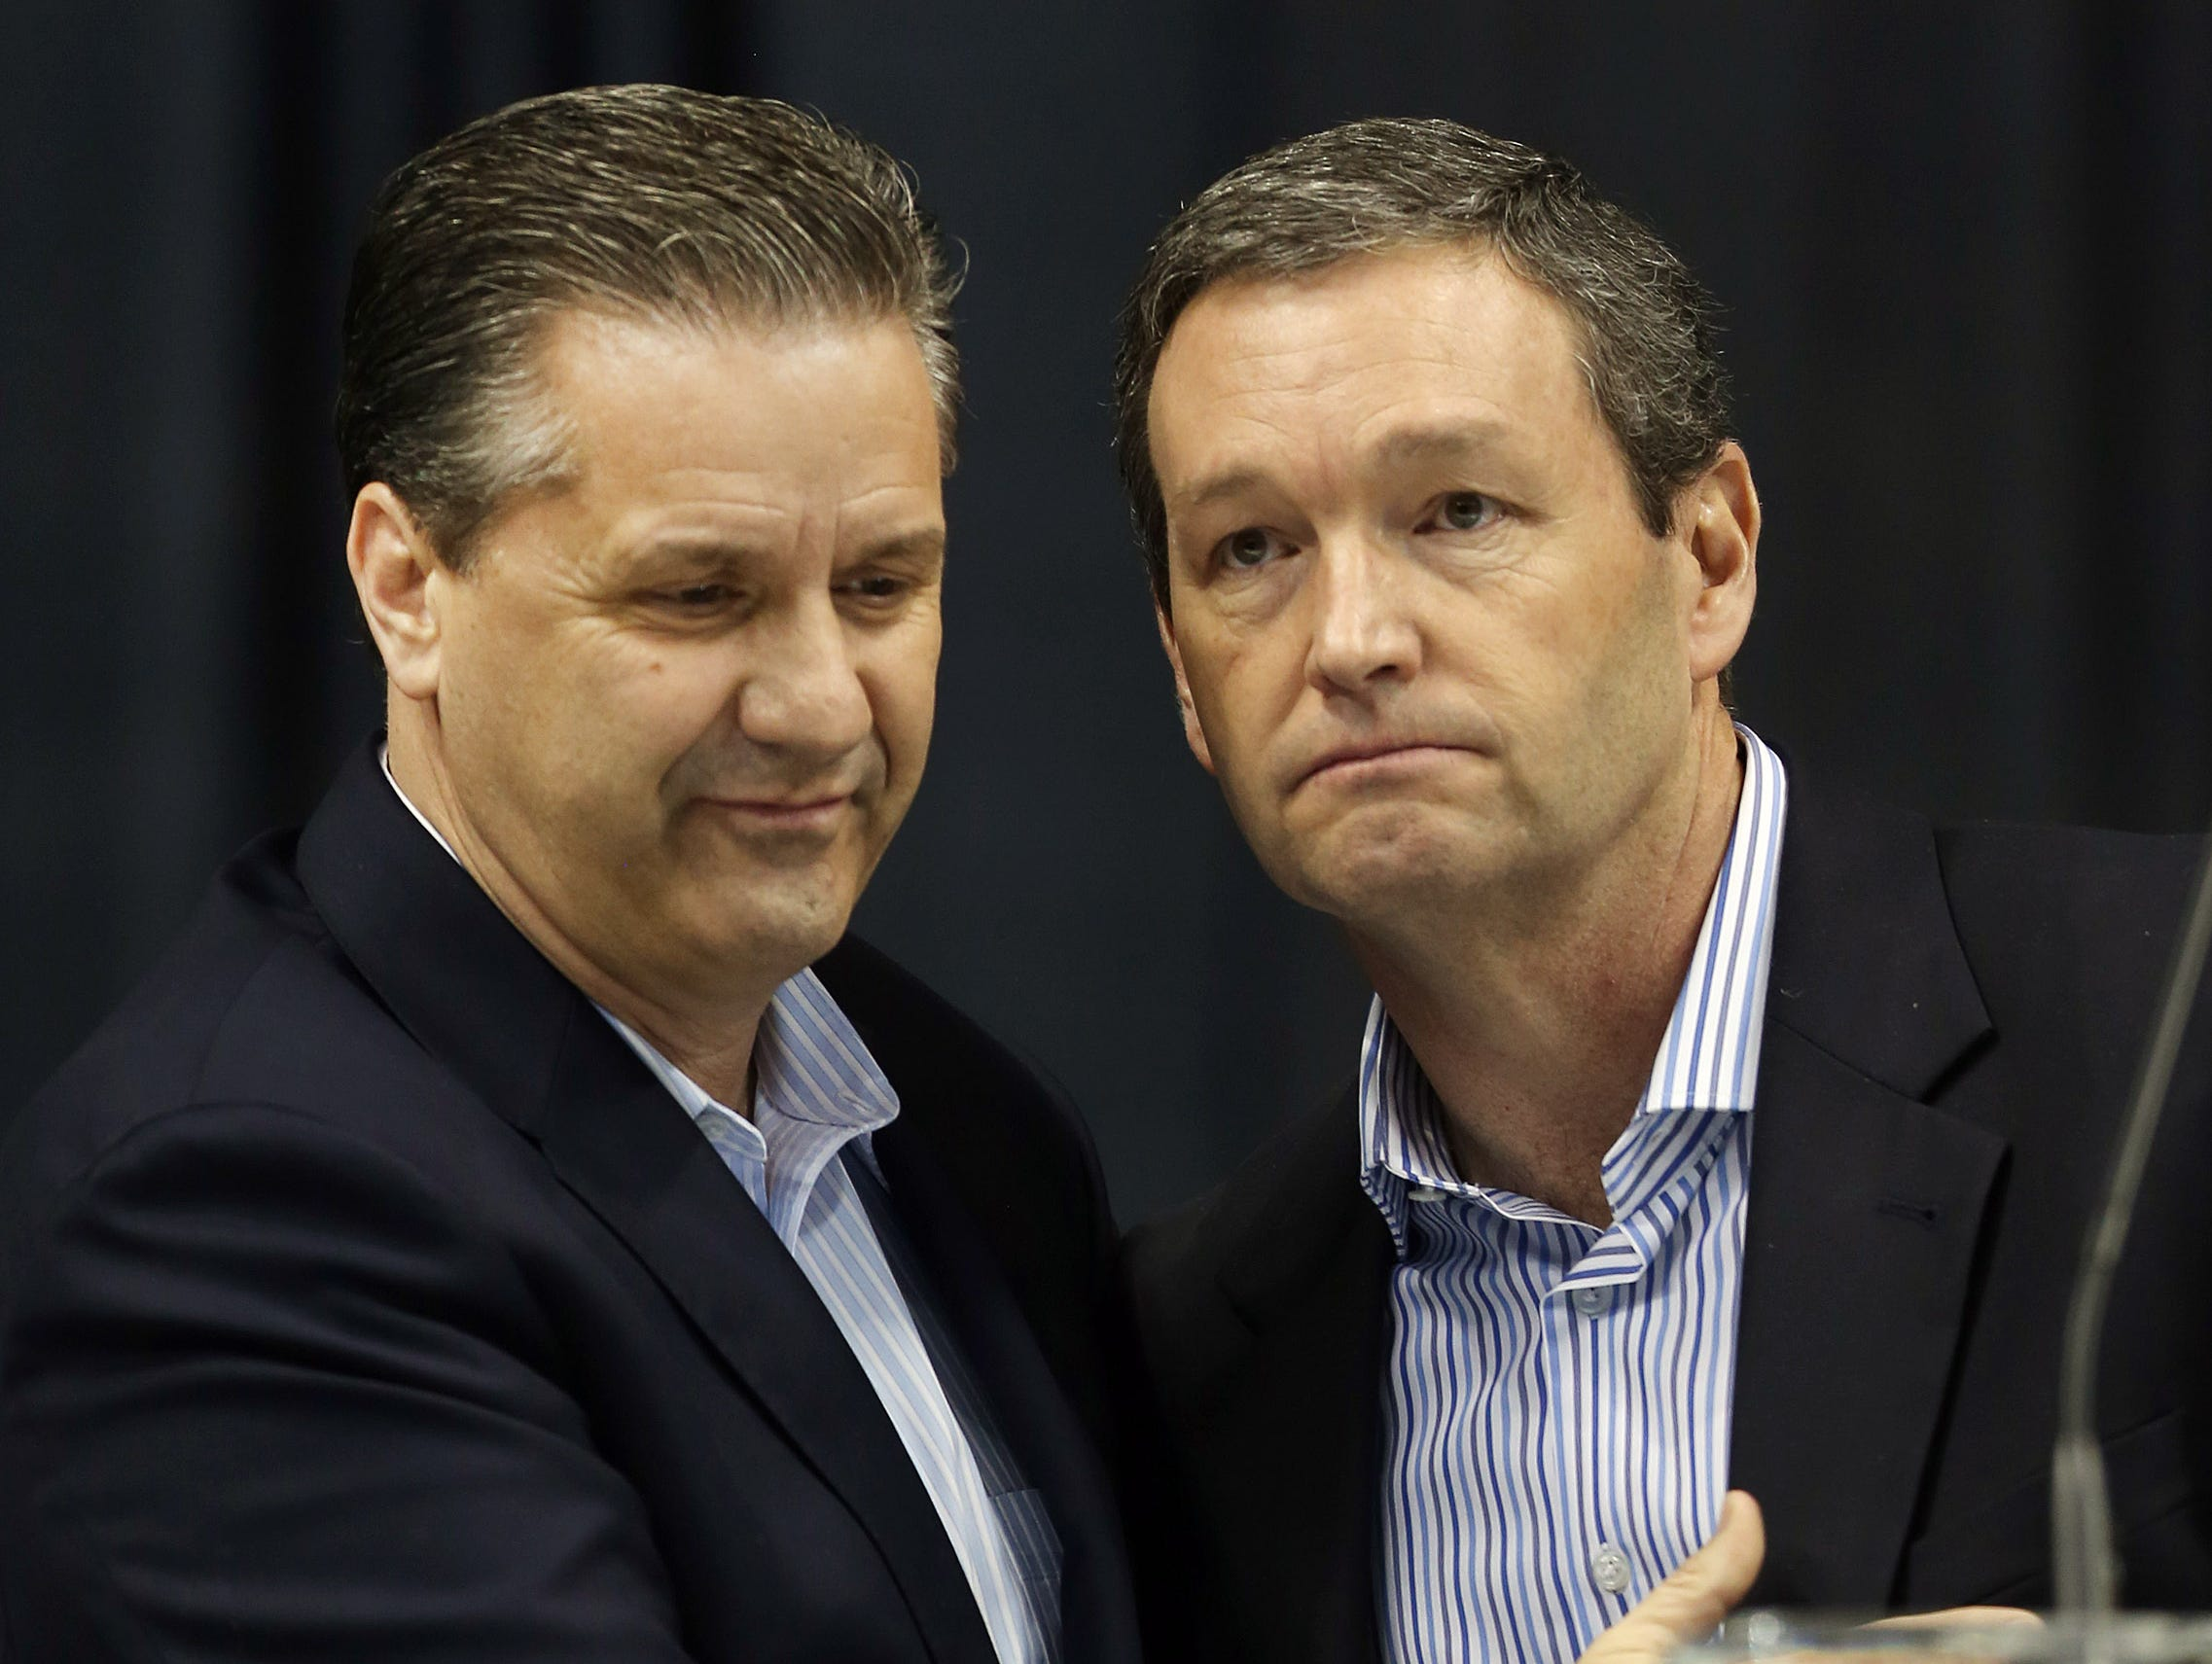 Kentucky head coach John Calipari, left, is introduced by Athletics Director Mitch Barnhart during a celebration of Kentucky's run in the 2014 NCAA Tournament at Rupp Arena in Lexington. April 8, 2014